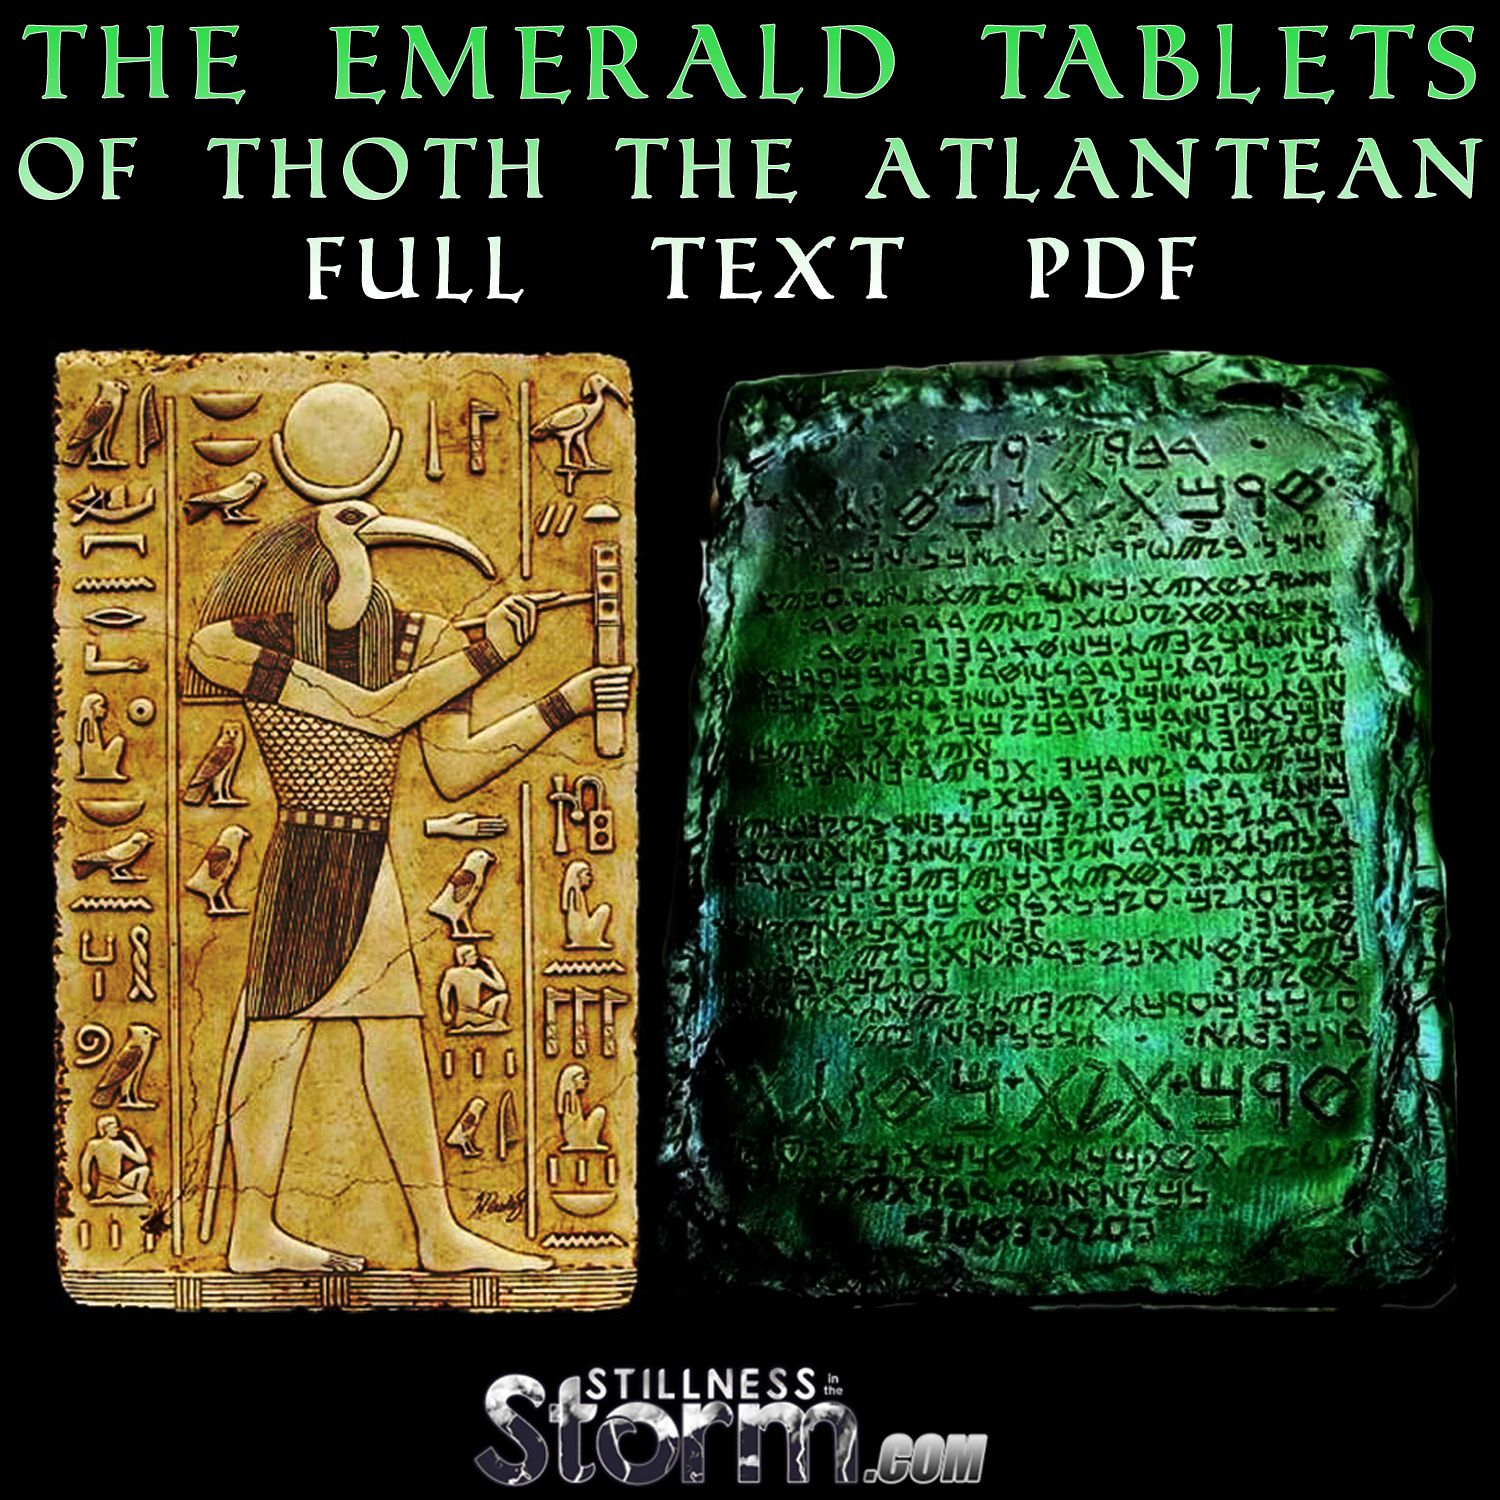 Stillness in the Storm : The Emerald Tablets of Thoth the